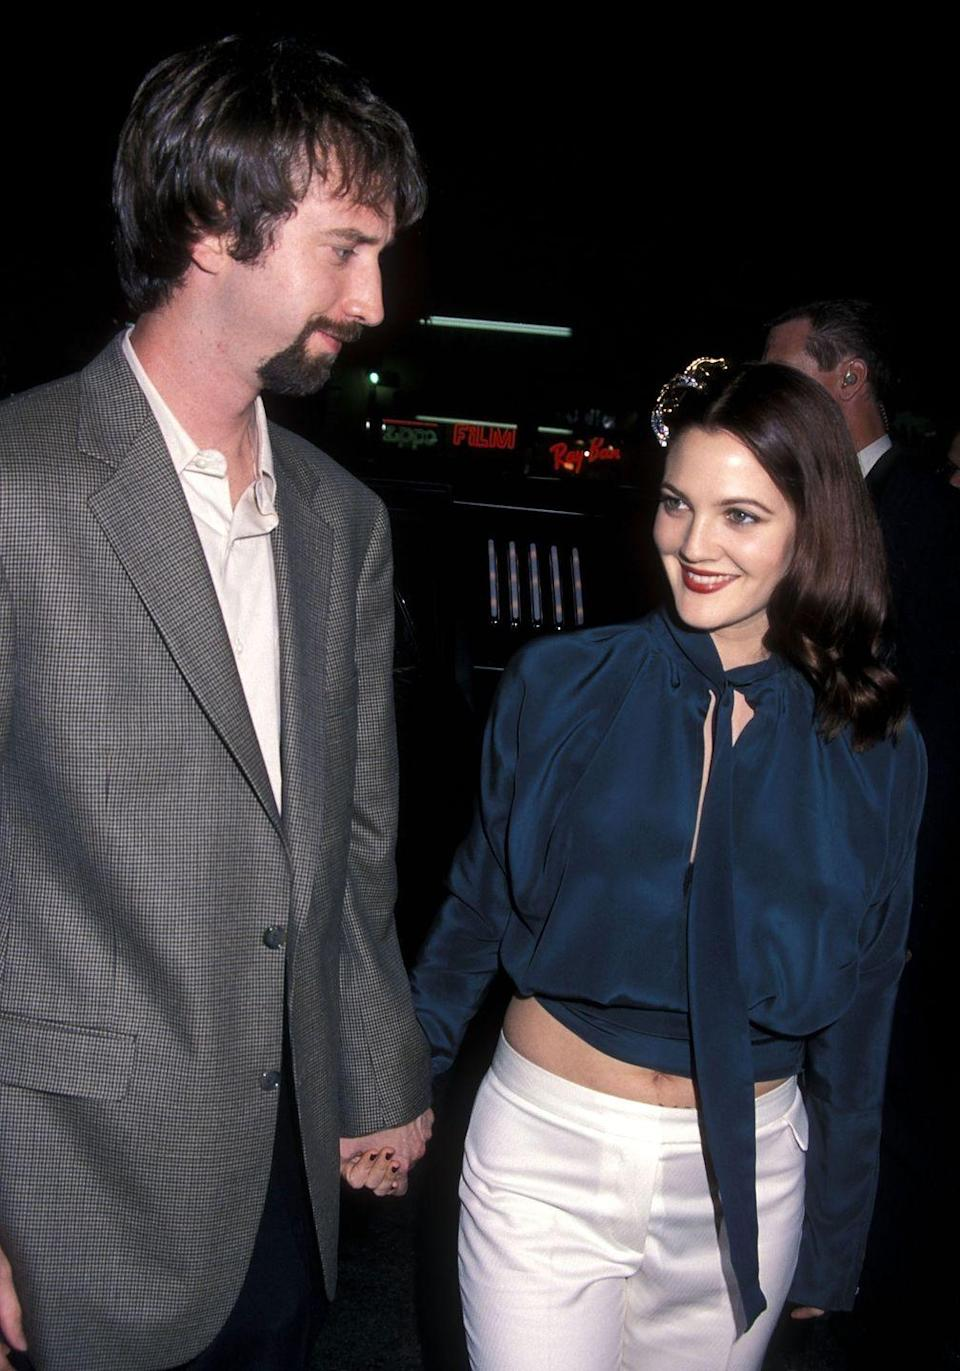 "<p>Tom Green and Drew Barrymore <a href=""http://people.com/celebrity/tom-green-files-for-a-divorce-from-drew/"" rel=""nofollow noopener"" target=""_blank"" data-ylk=""slk:began dating"" class=""link rapid-noclick-resp"">began dating</a> in March 2000 and then eloped to the South Pacific in March 2001. Green then filed for divorce from Barrymore in December 2001 after less than a year of marriage. </p>"